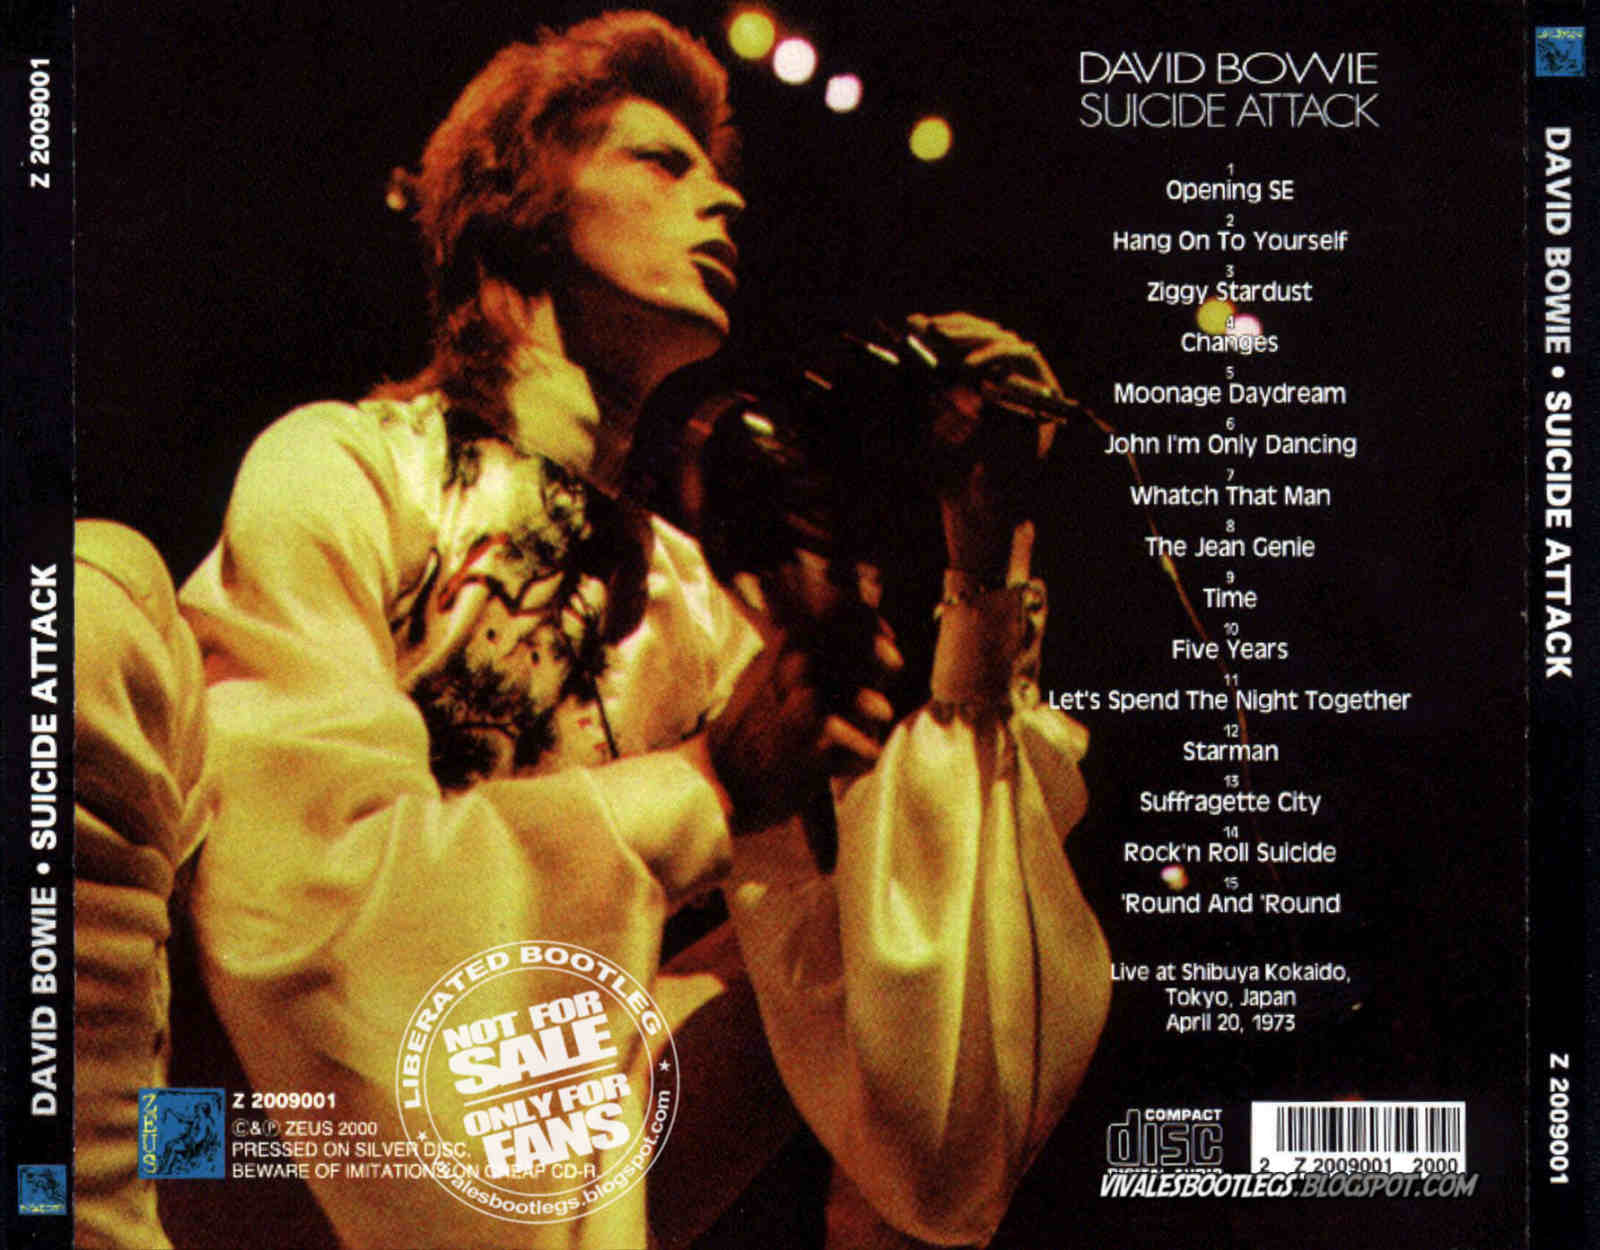 Best Of David Bowies   Tour Bootlegs